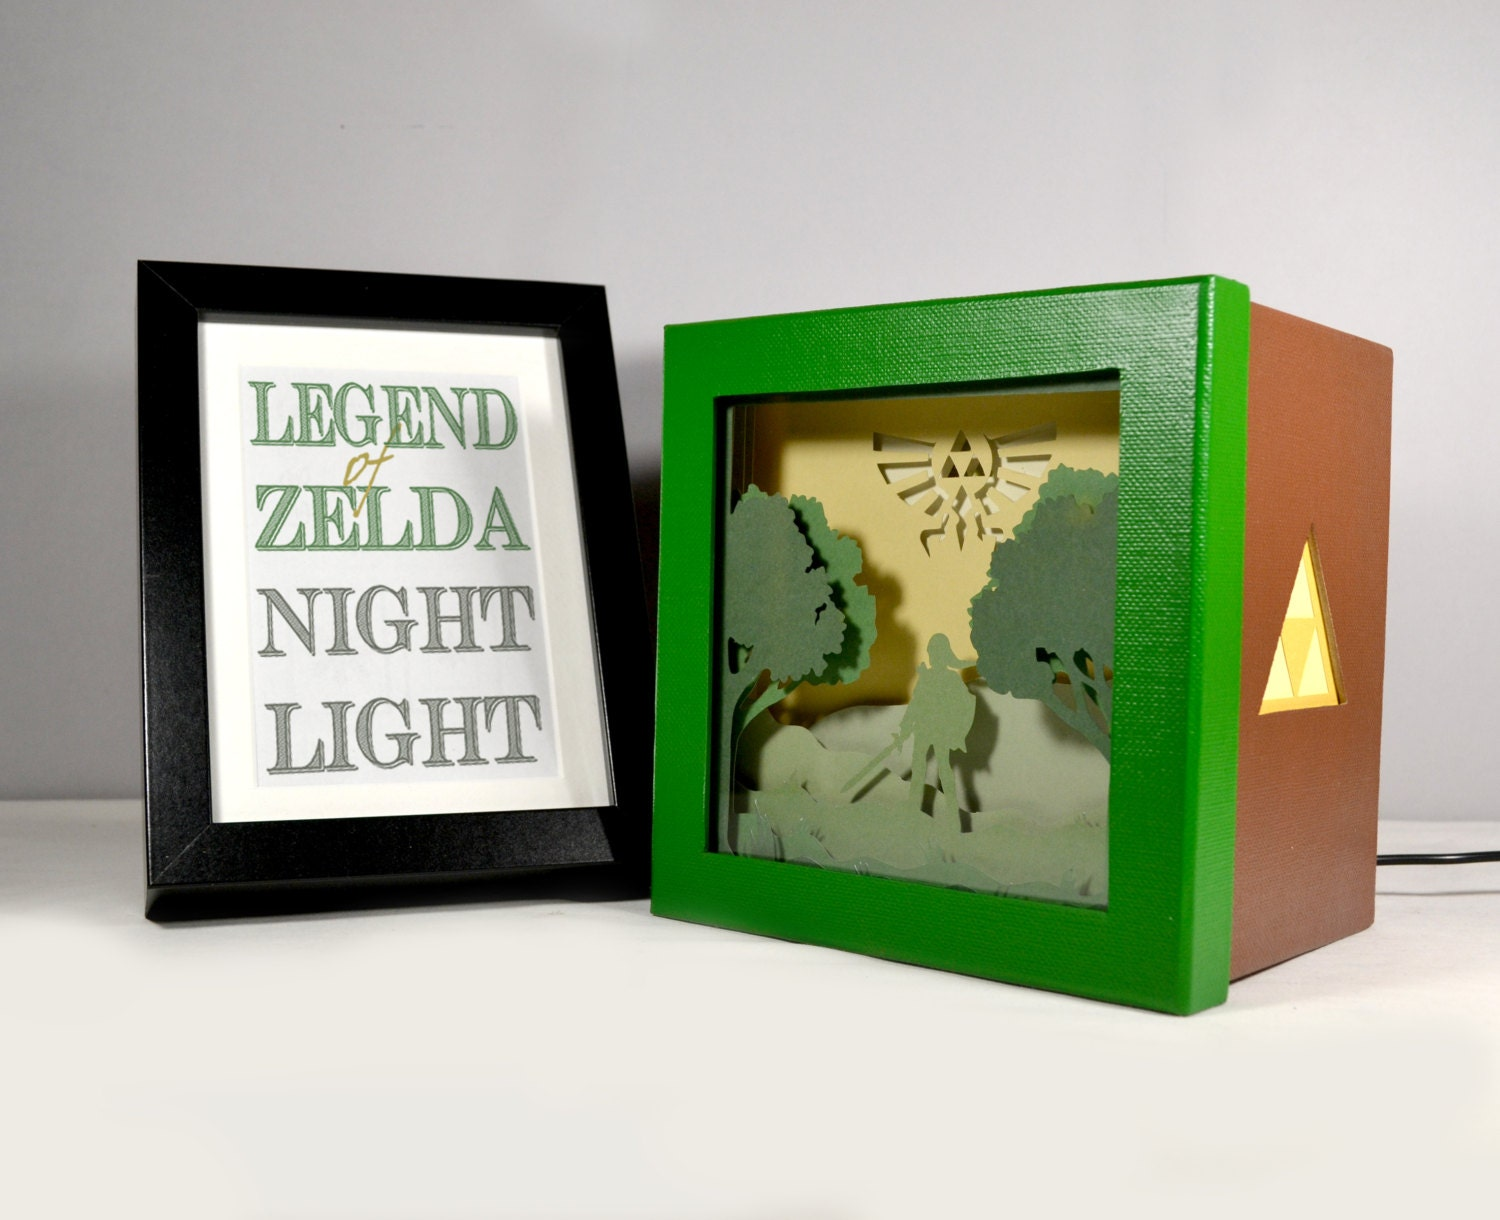 zelda night light unique special gift geek night light